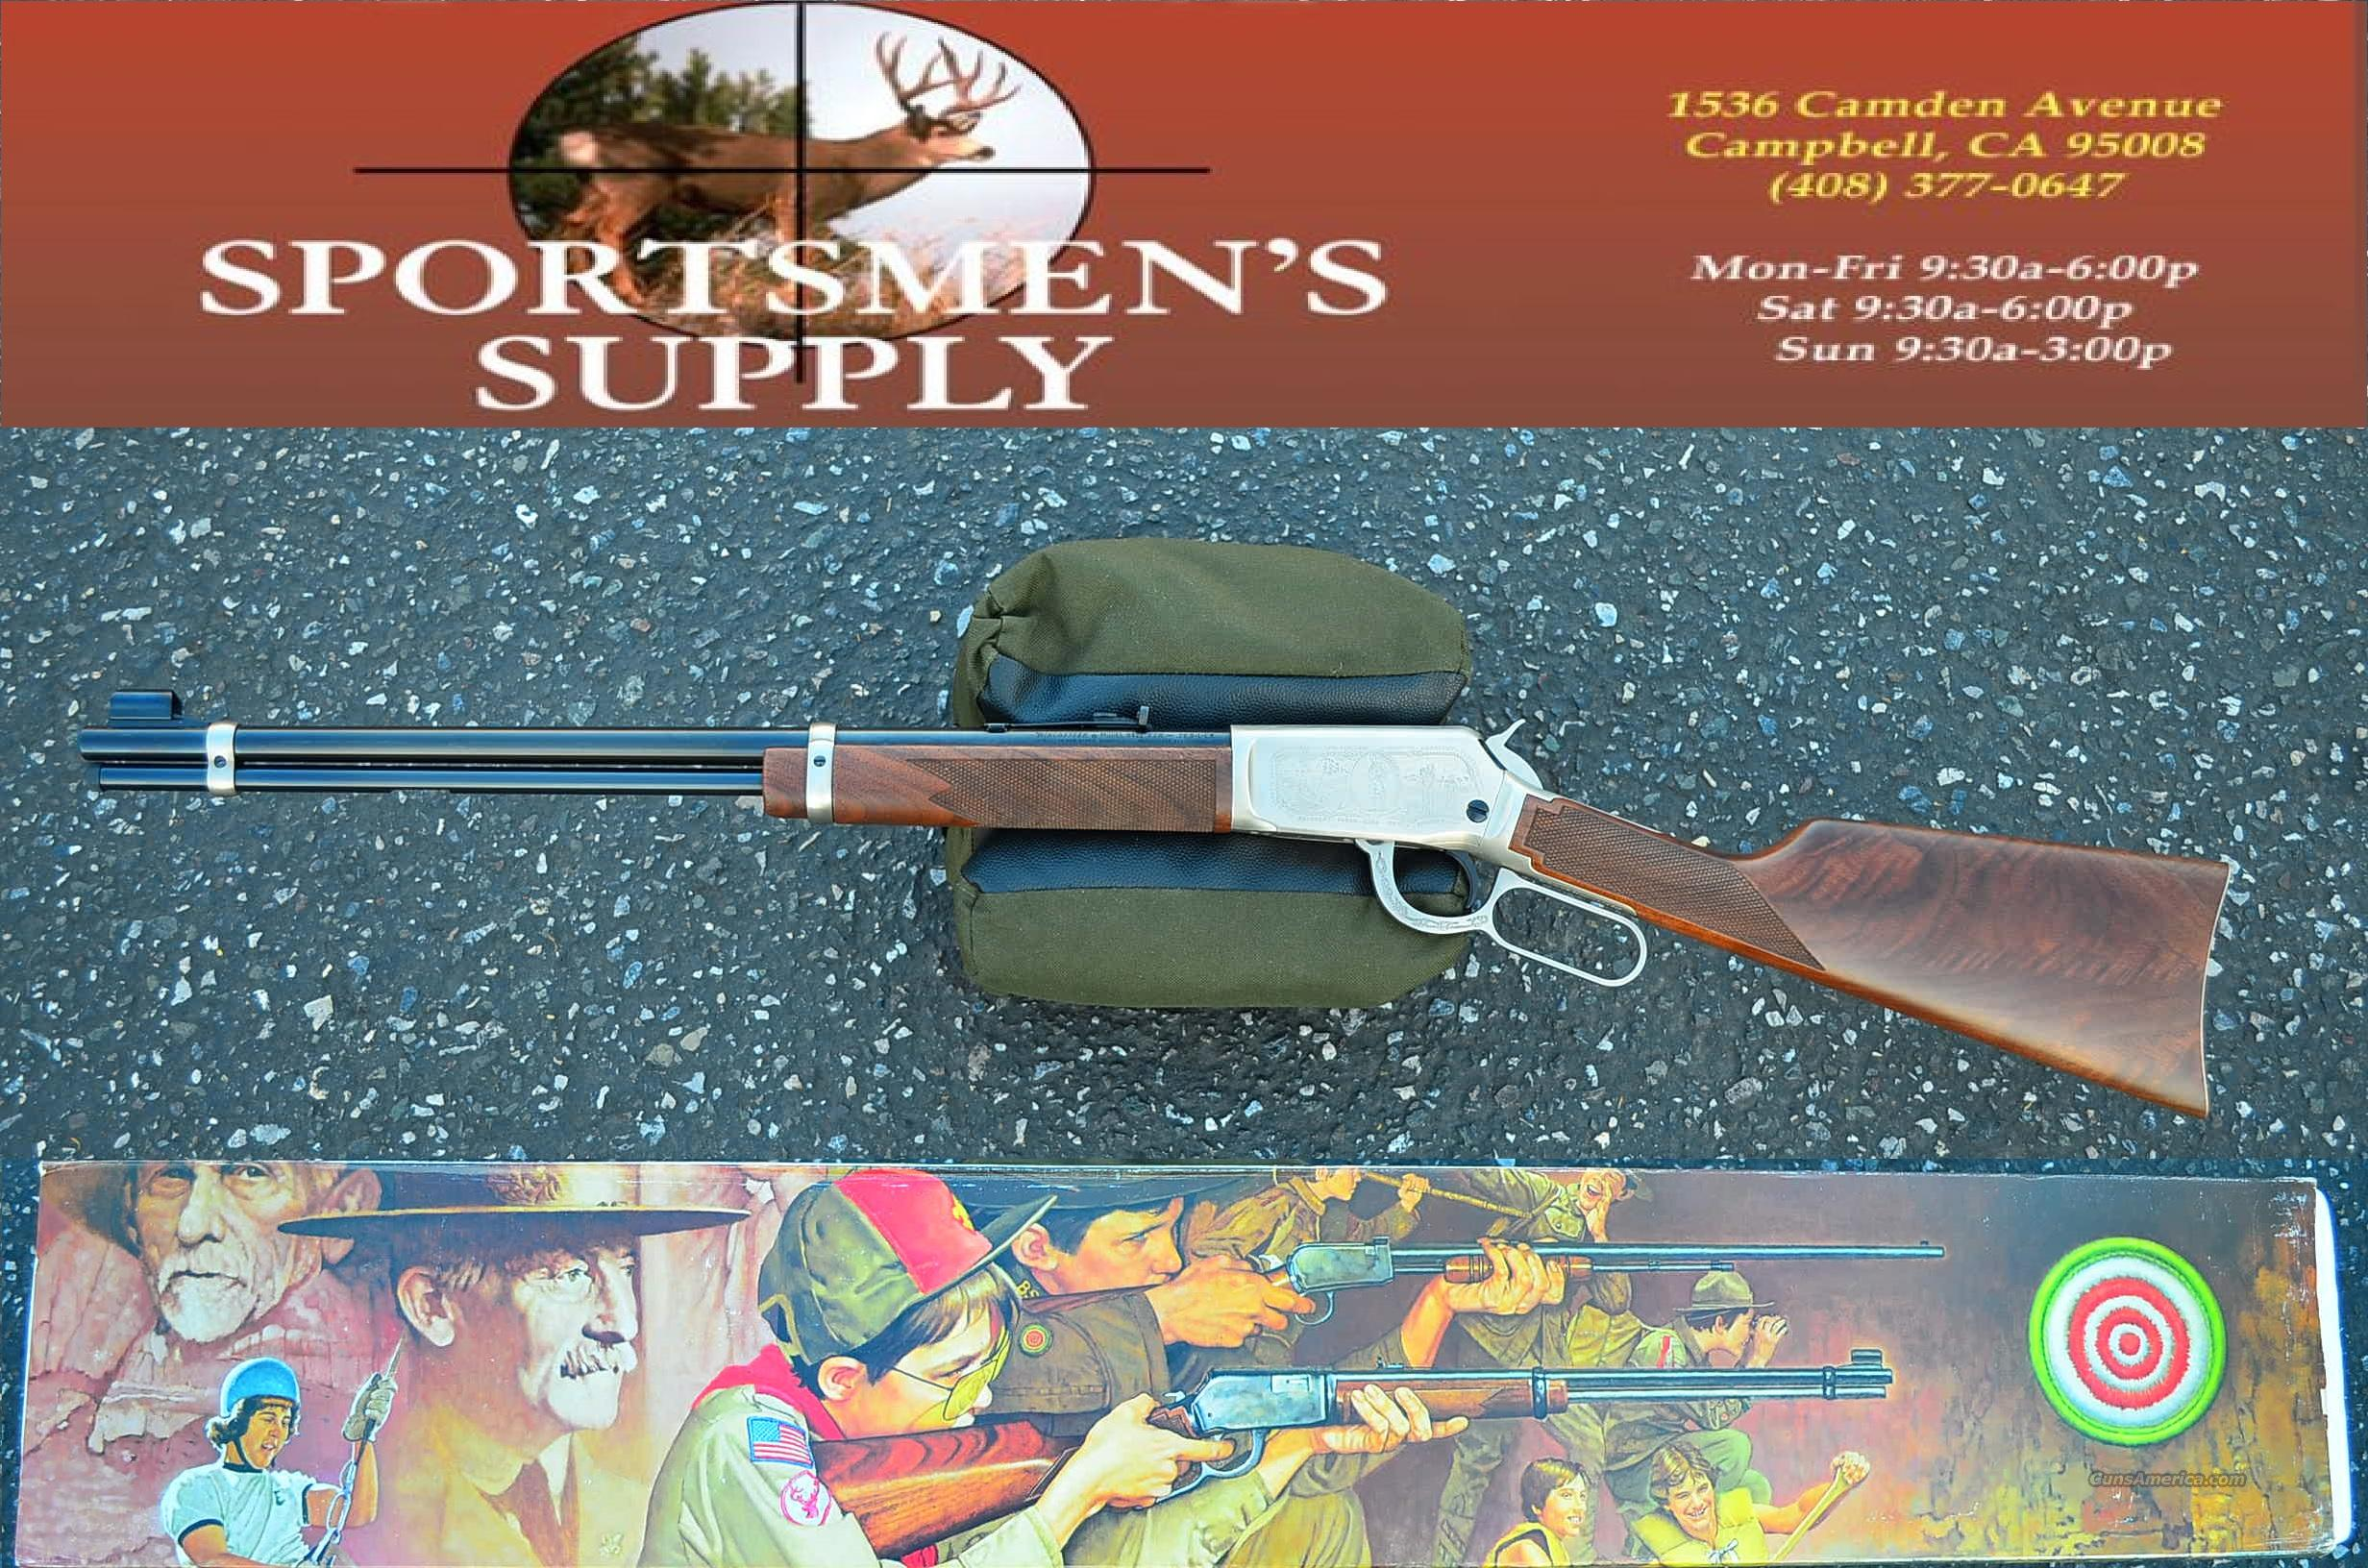 WINCHESTER 9422 LEVER 75th ANNIVERSARY BOU SCOUTS of AMERICA  Guns > Rifles > Winchester Rifle Commemoratives